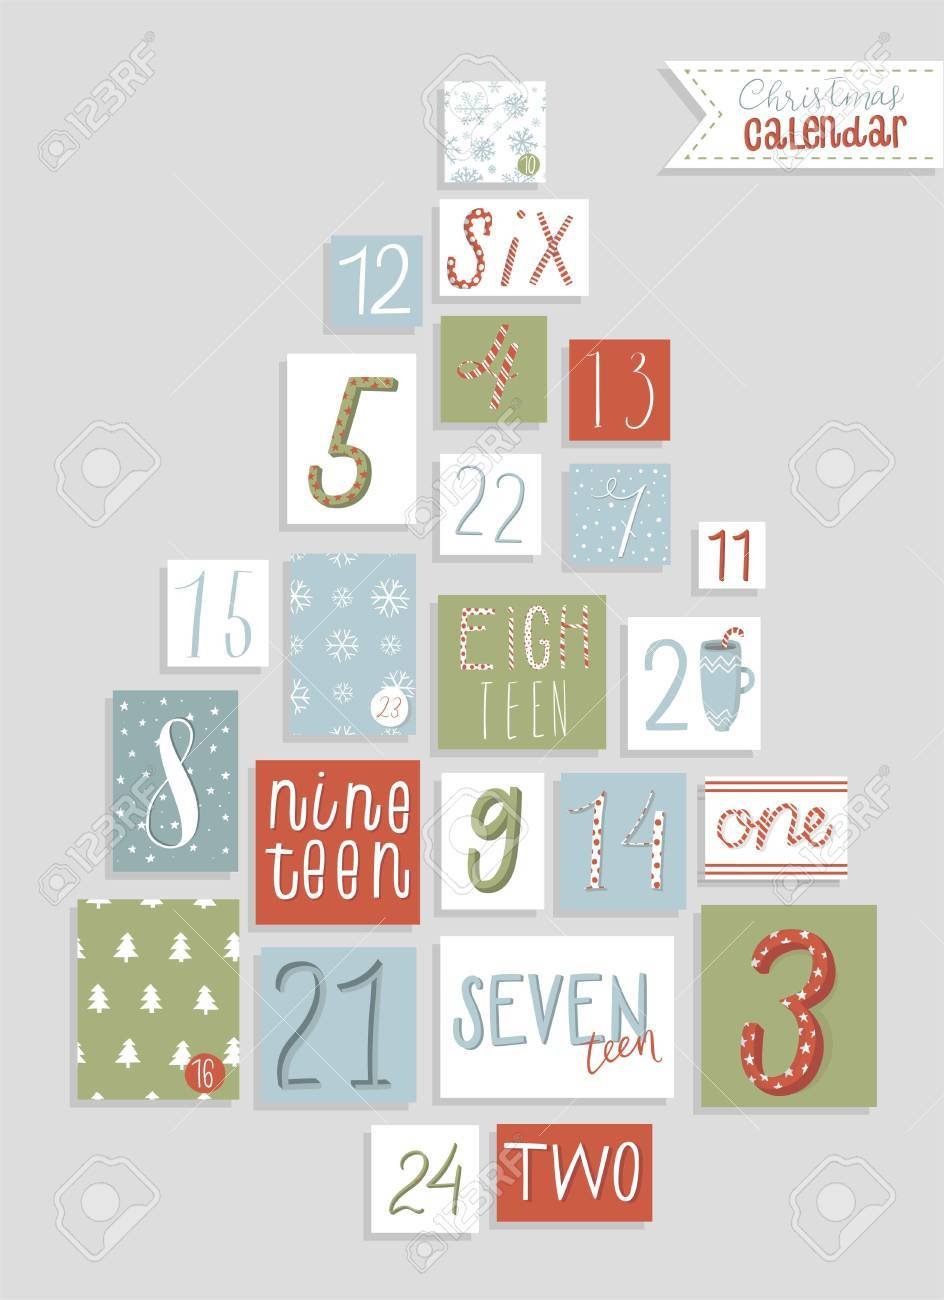 image regarding Advent Calendar Printable named Xmas arrival calendar, lovable hand drawn design and style. 20 4..